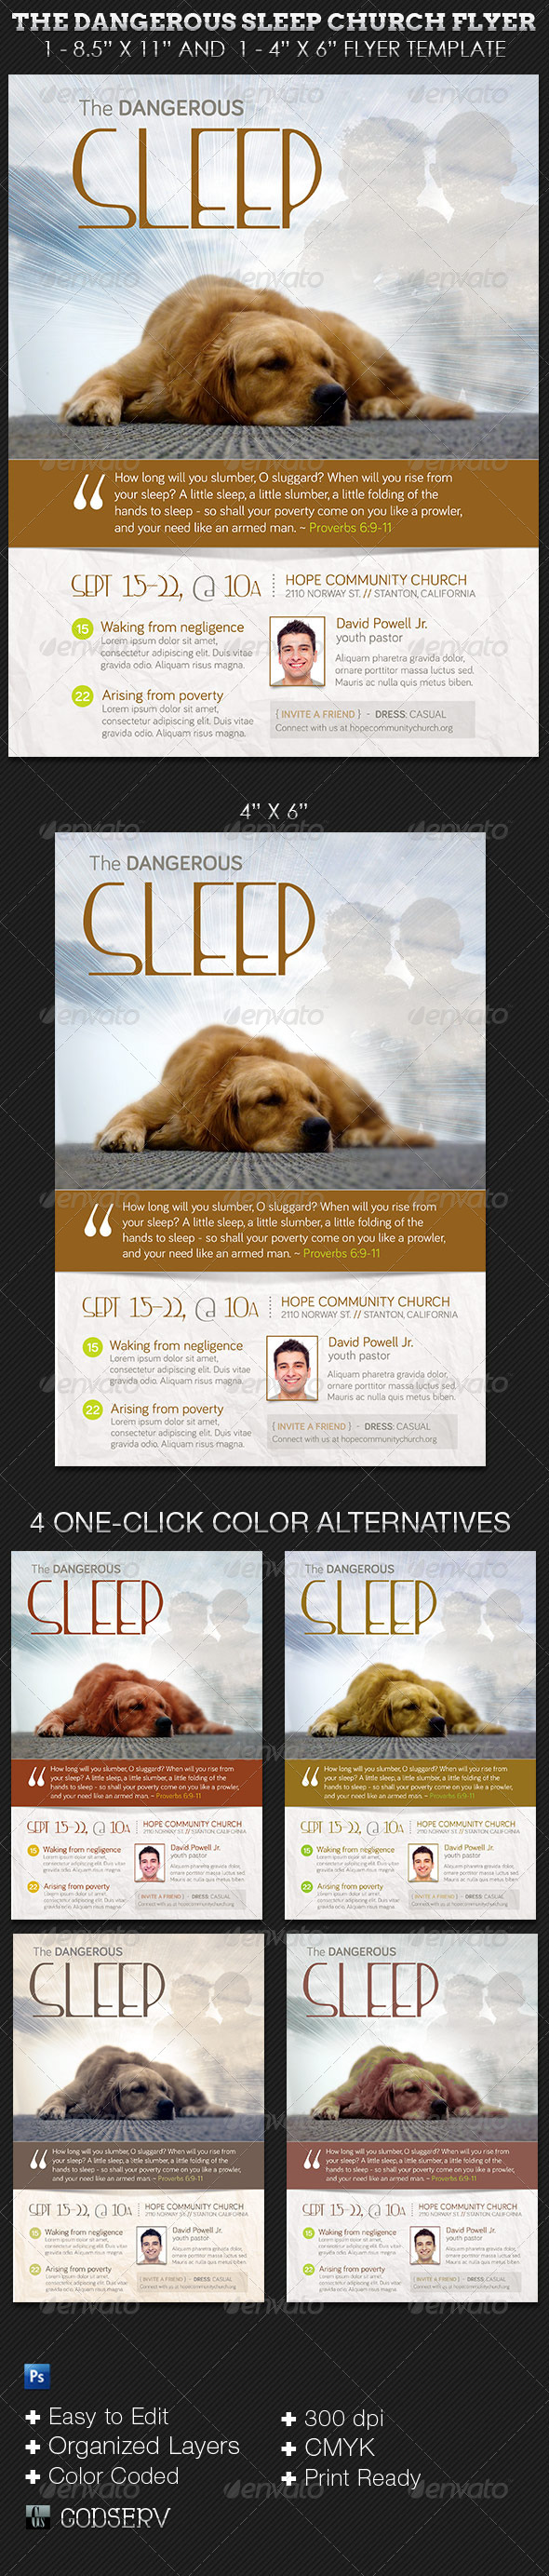 The Dangerous Sleep Church Flyer Template - Church Flyers